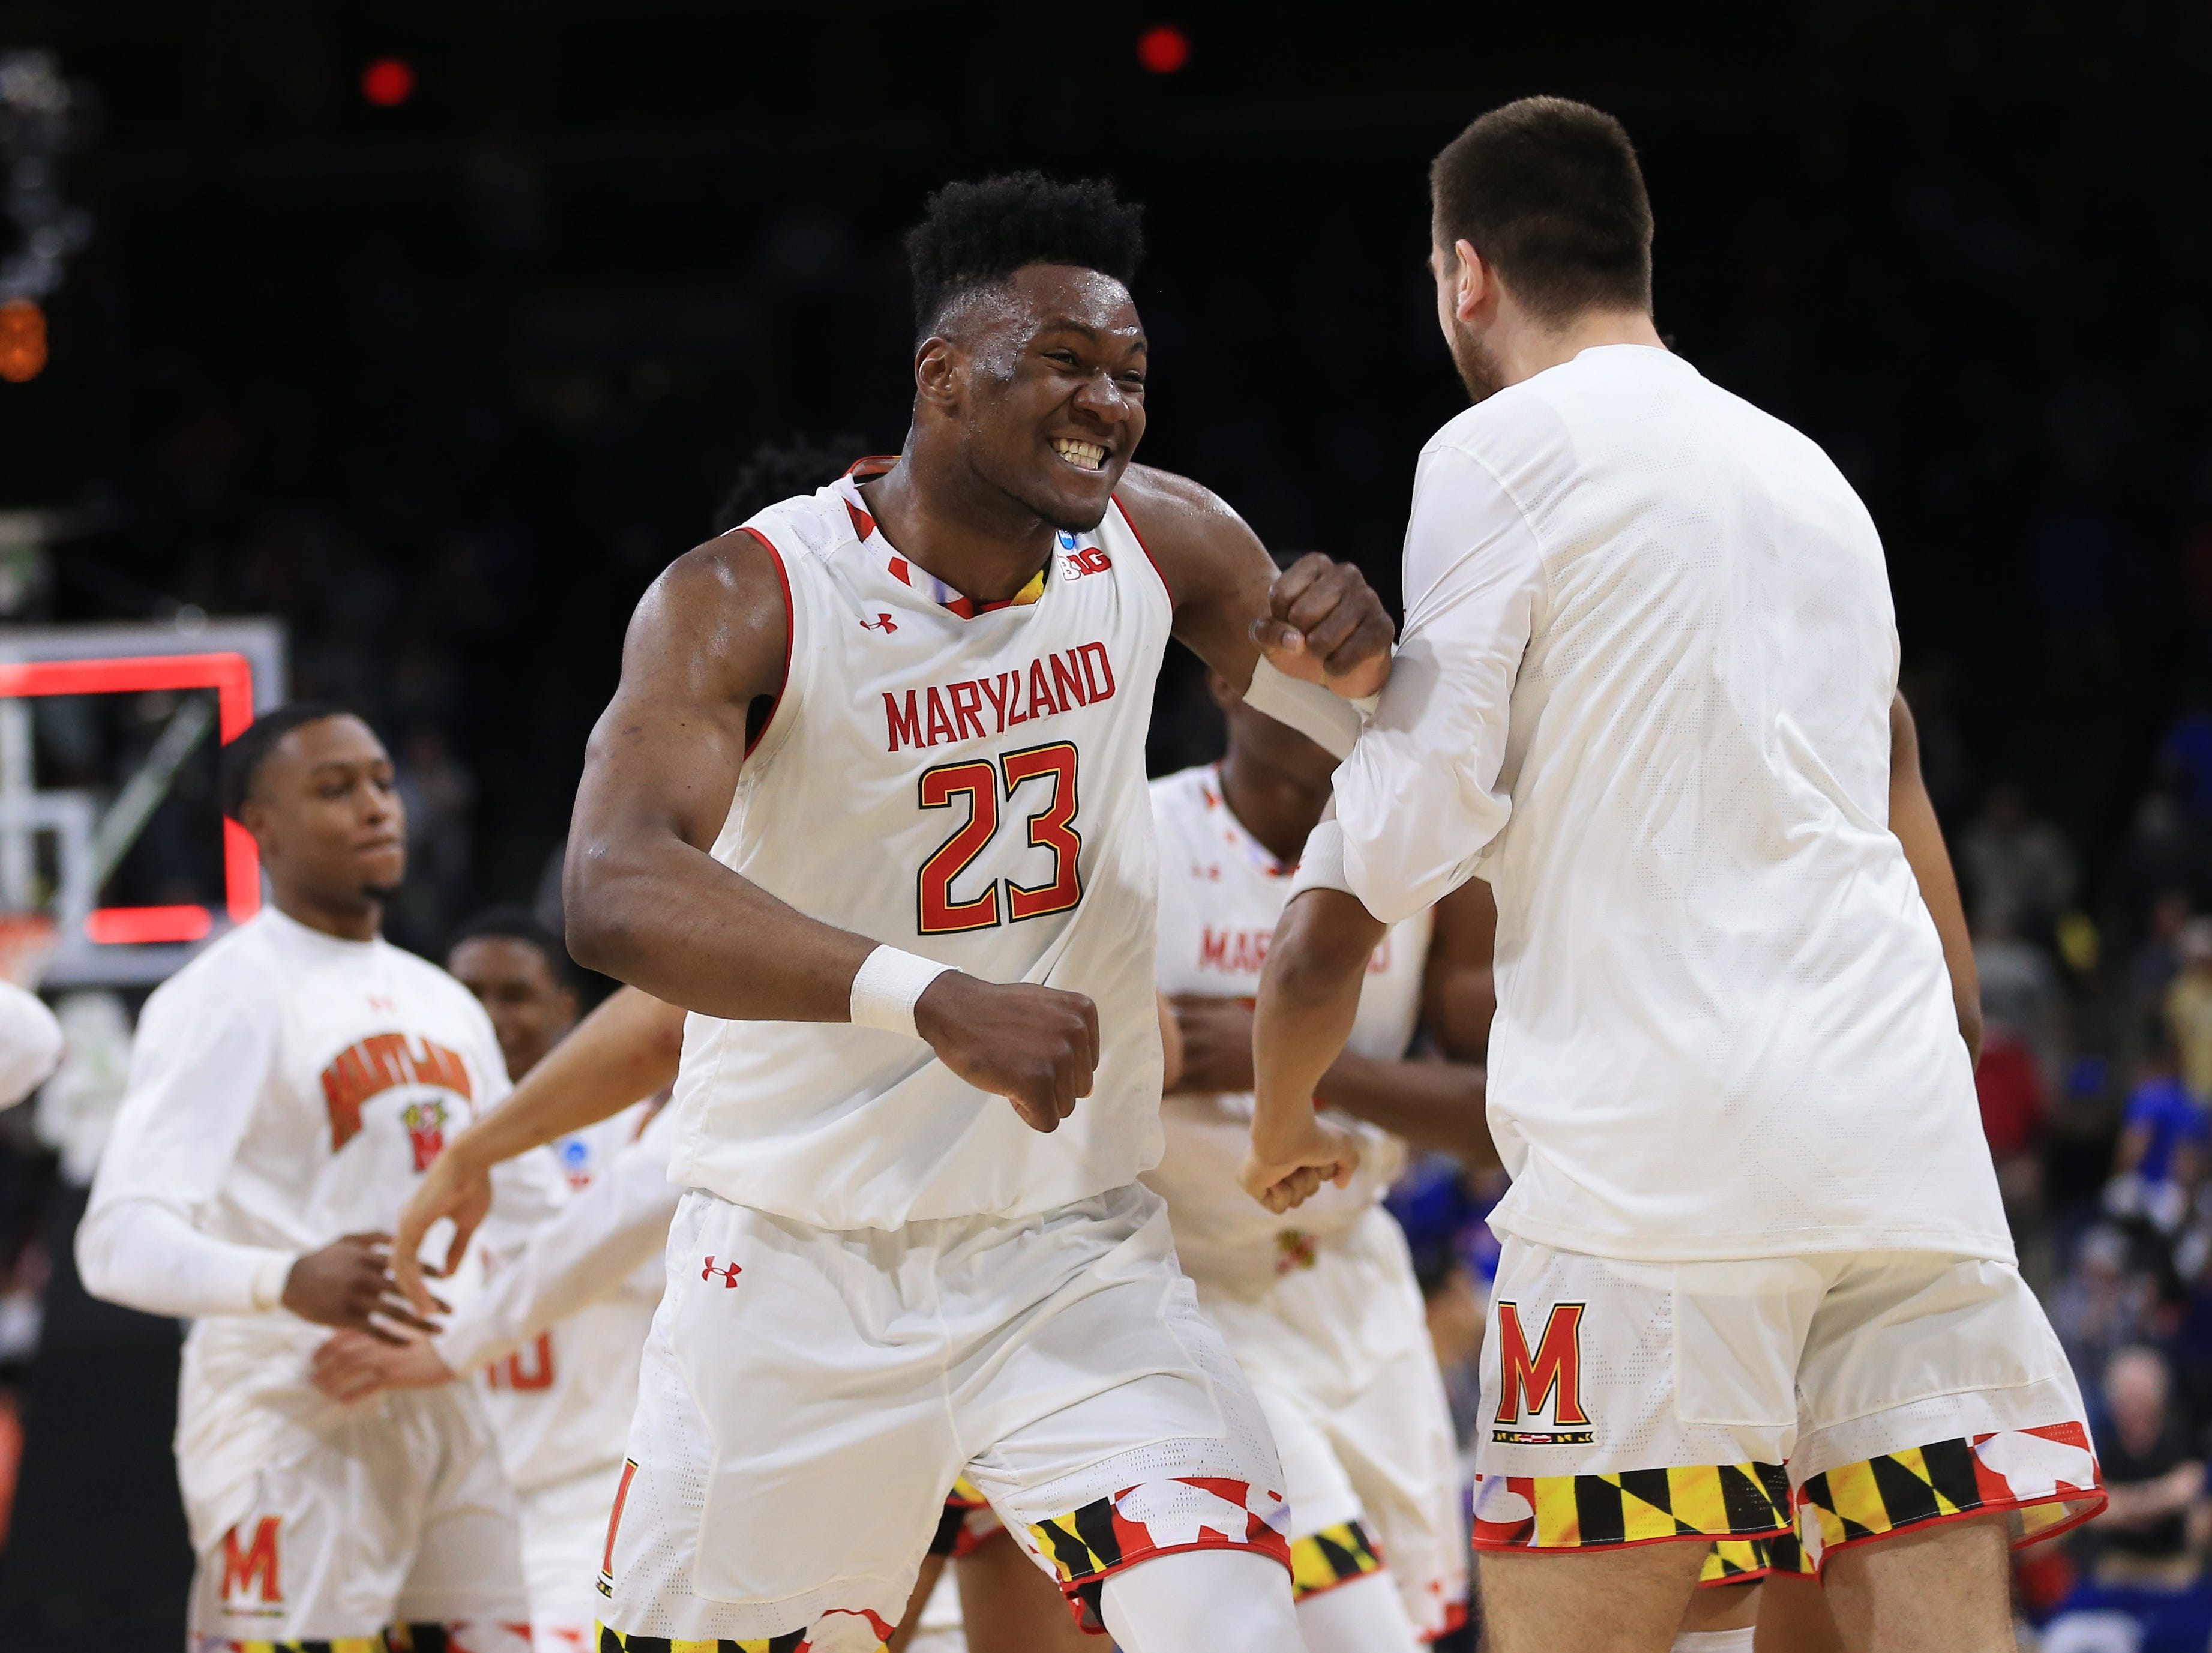 Mar 21, 2019; Jacksonville, FL, USA; Maryland Terrapins forward Bruno Fernando (23) celebrates with teammates after defeating the against the Belmont Bruins during the second half in the first round of the 2019 NCAA Tournament at Jacksonville Veterans Memorial Arena. Mandatory Credit: Matt Stamey-USA TODAY Sports